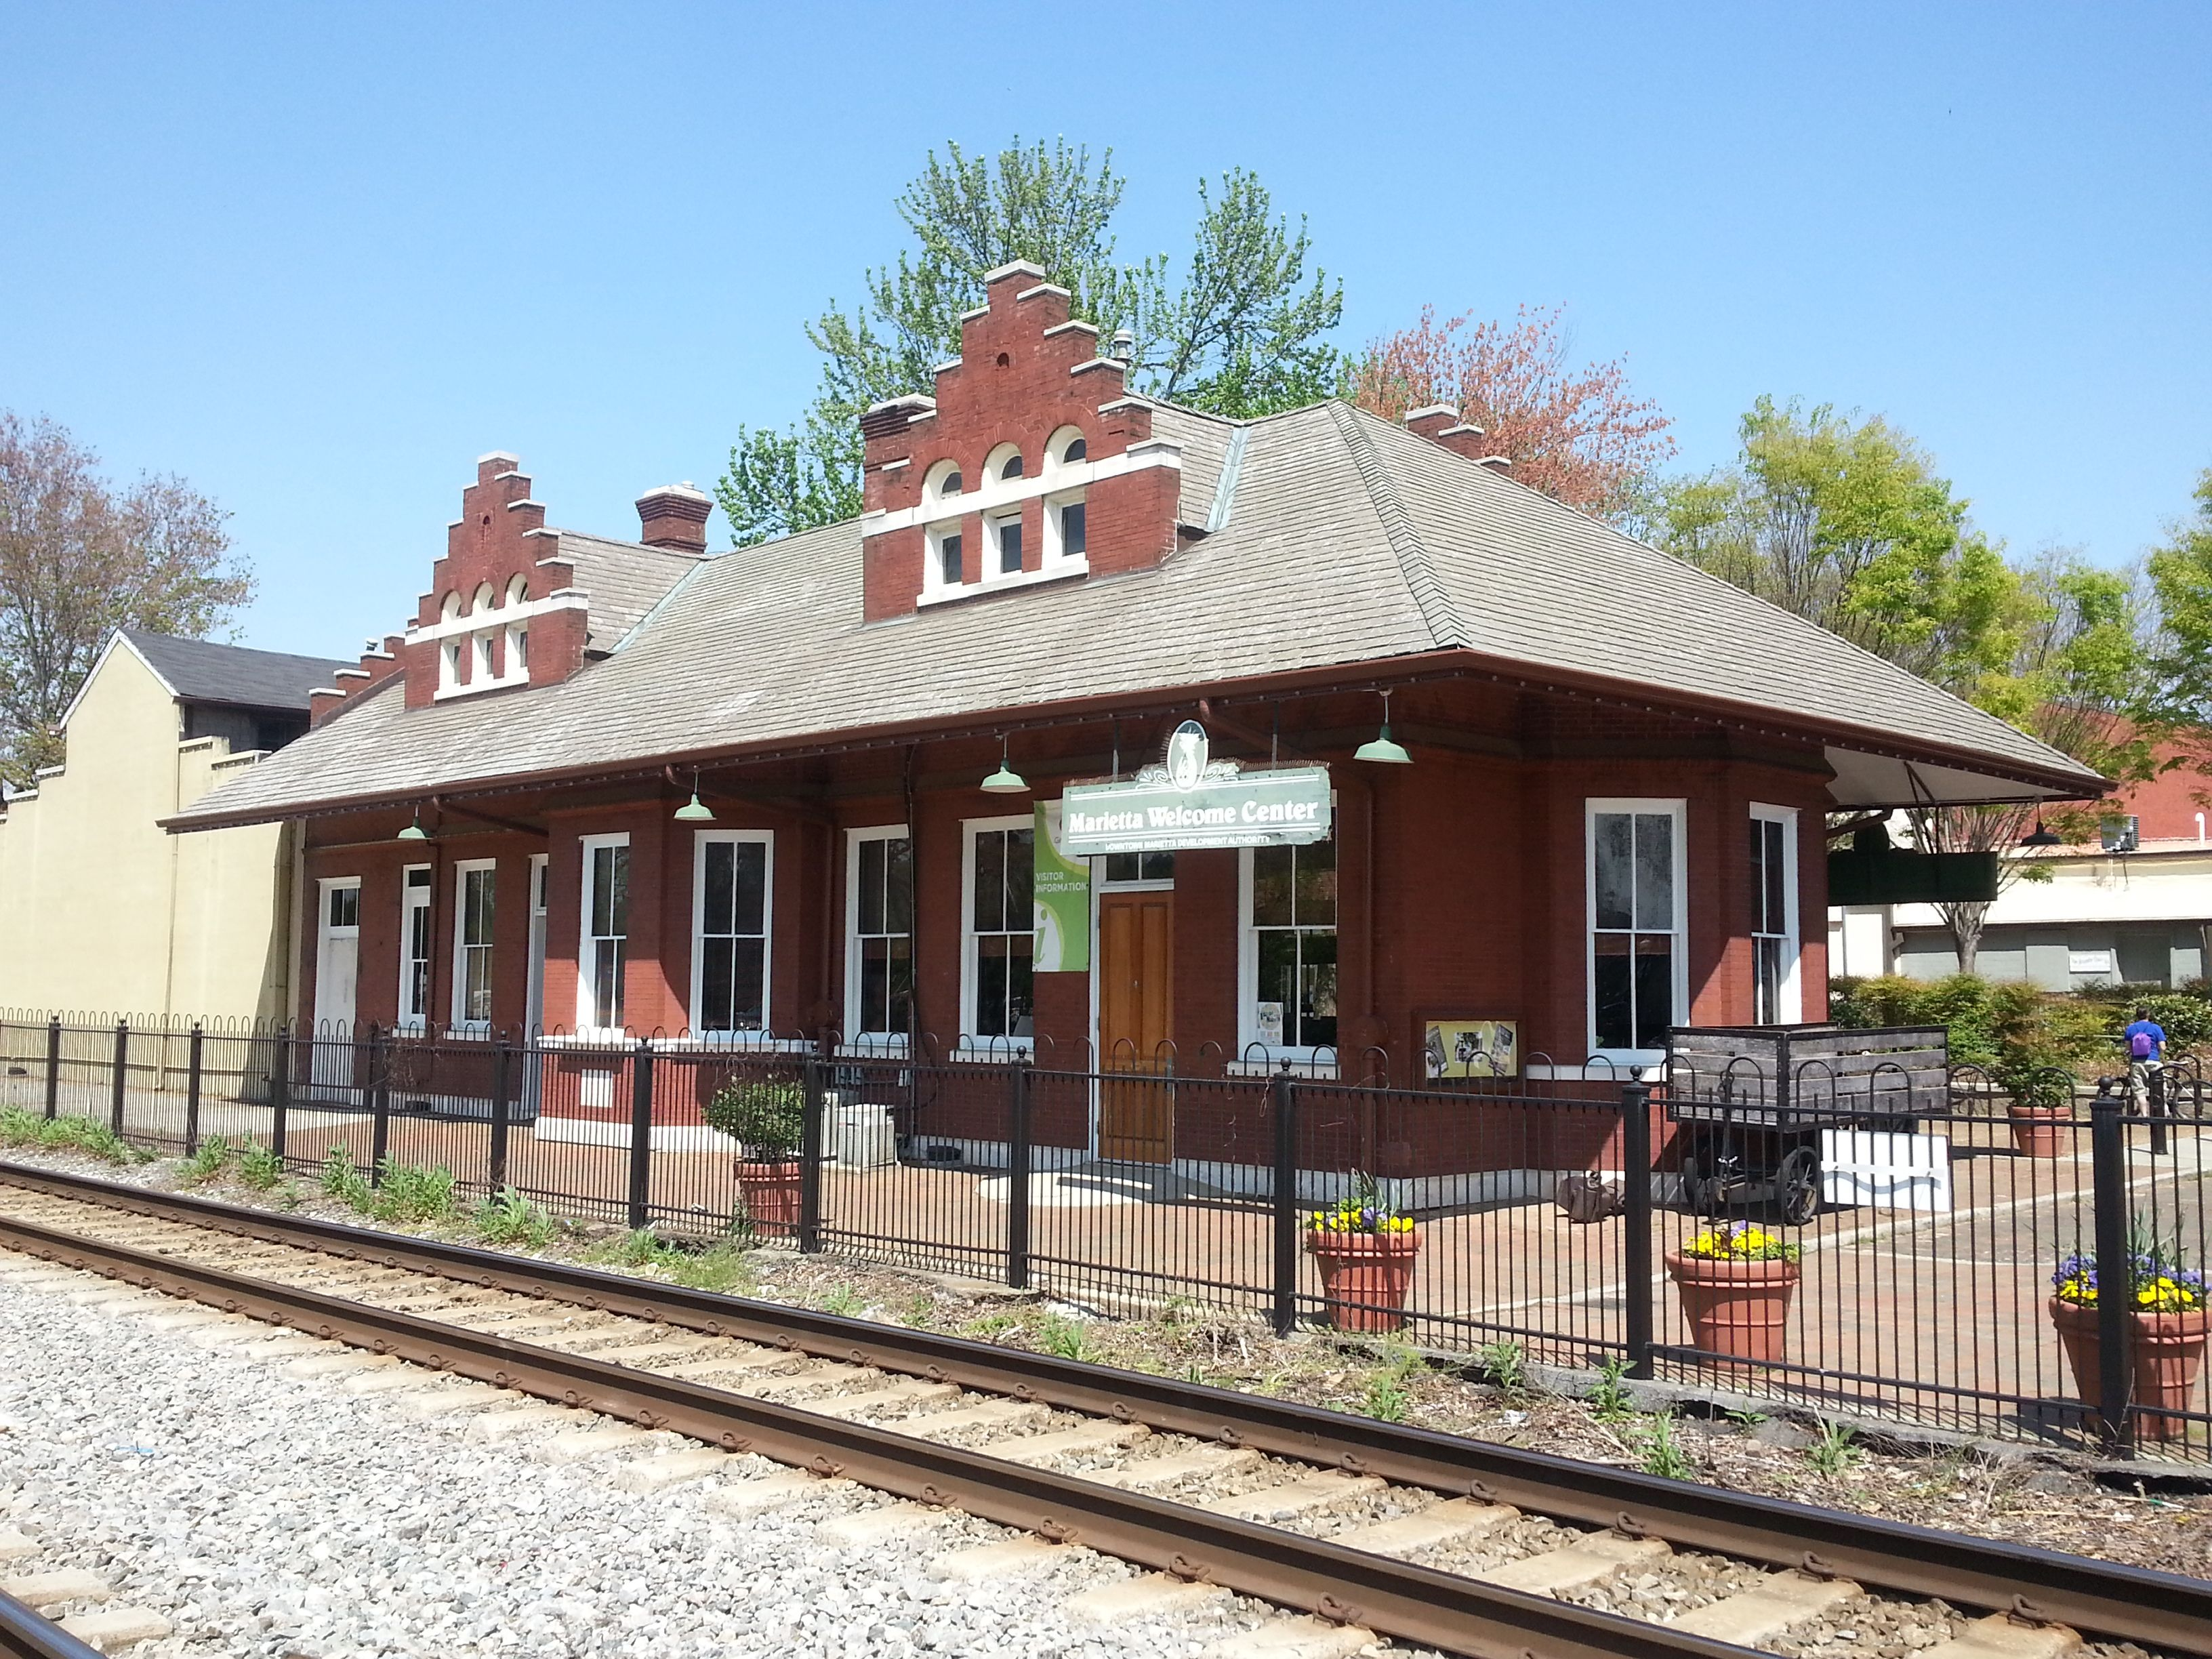 best Railroad Stations images on Pinterest